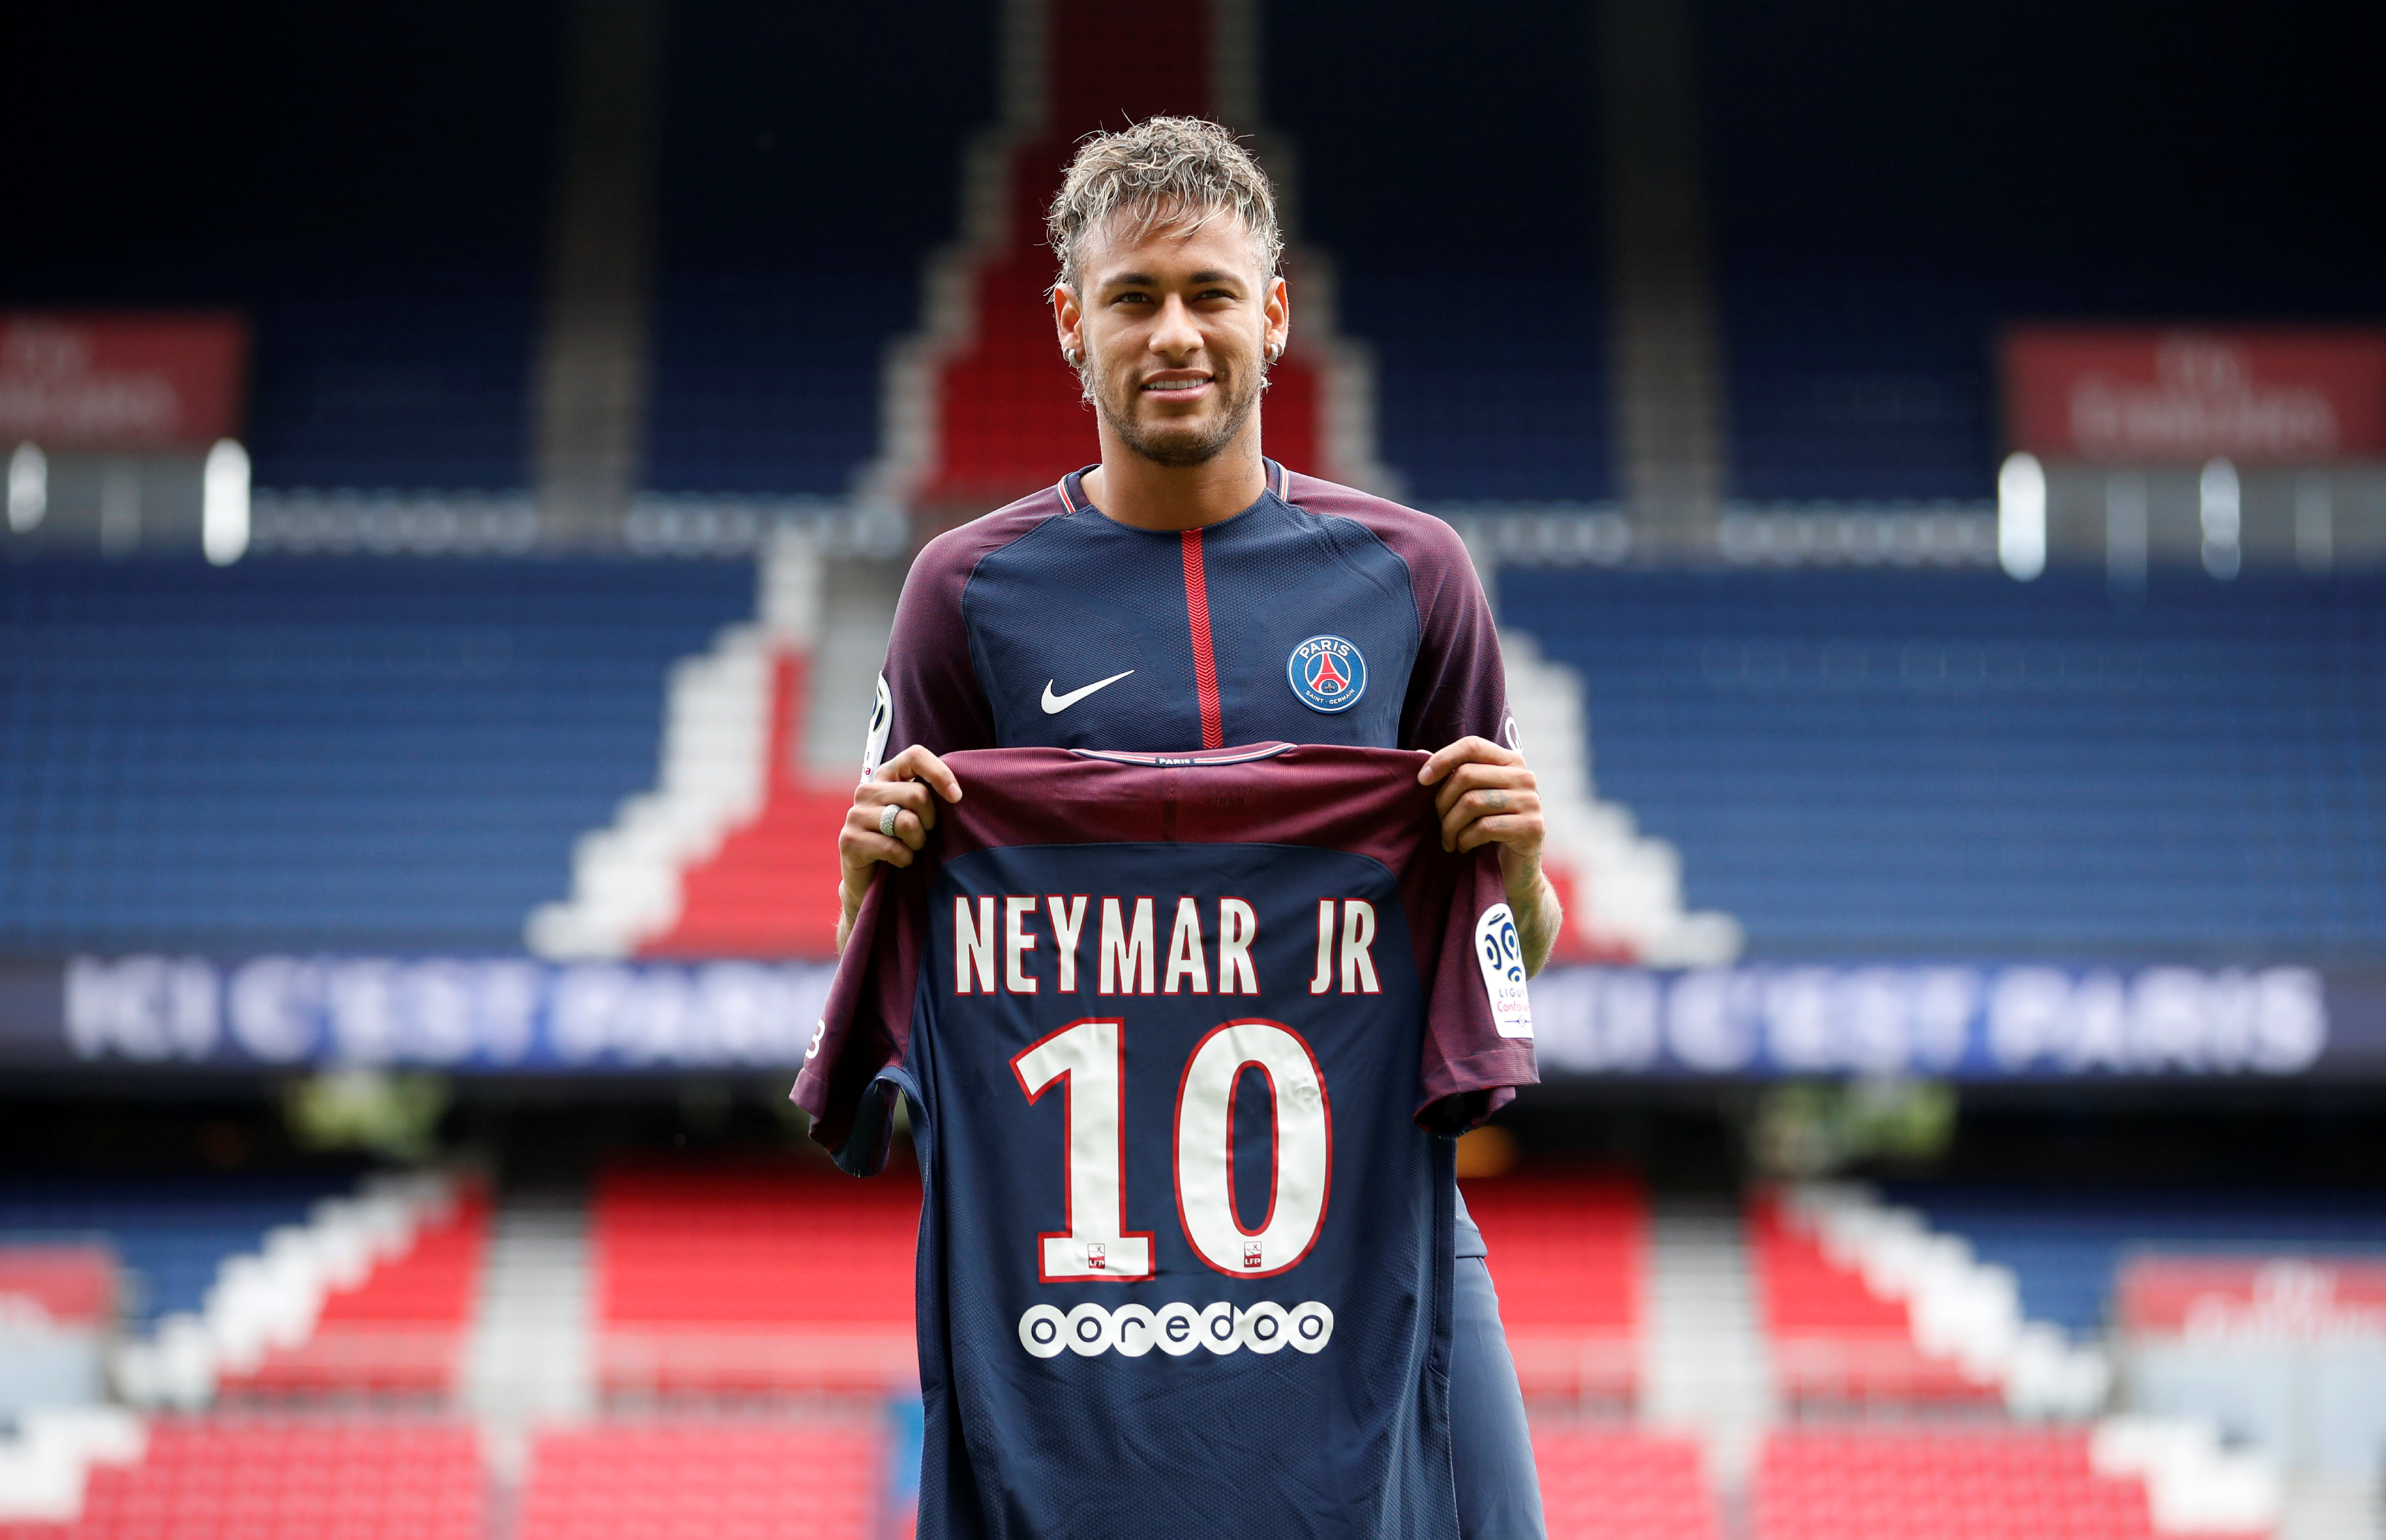 Football: Neymar to miss PSG opener after registration delay, says report